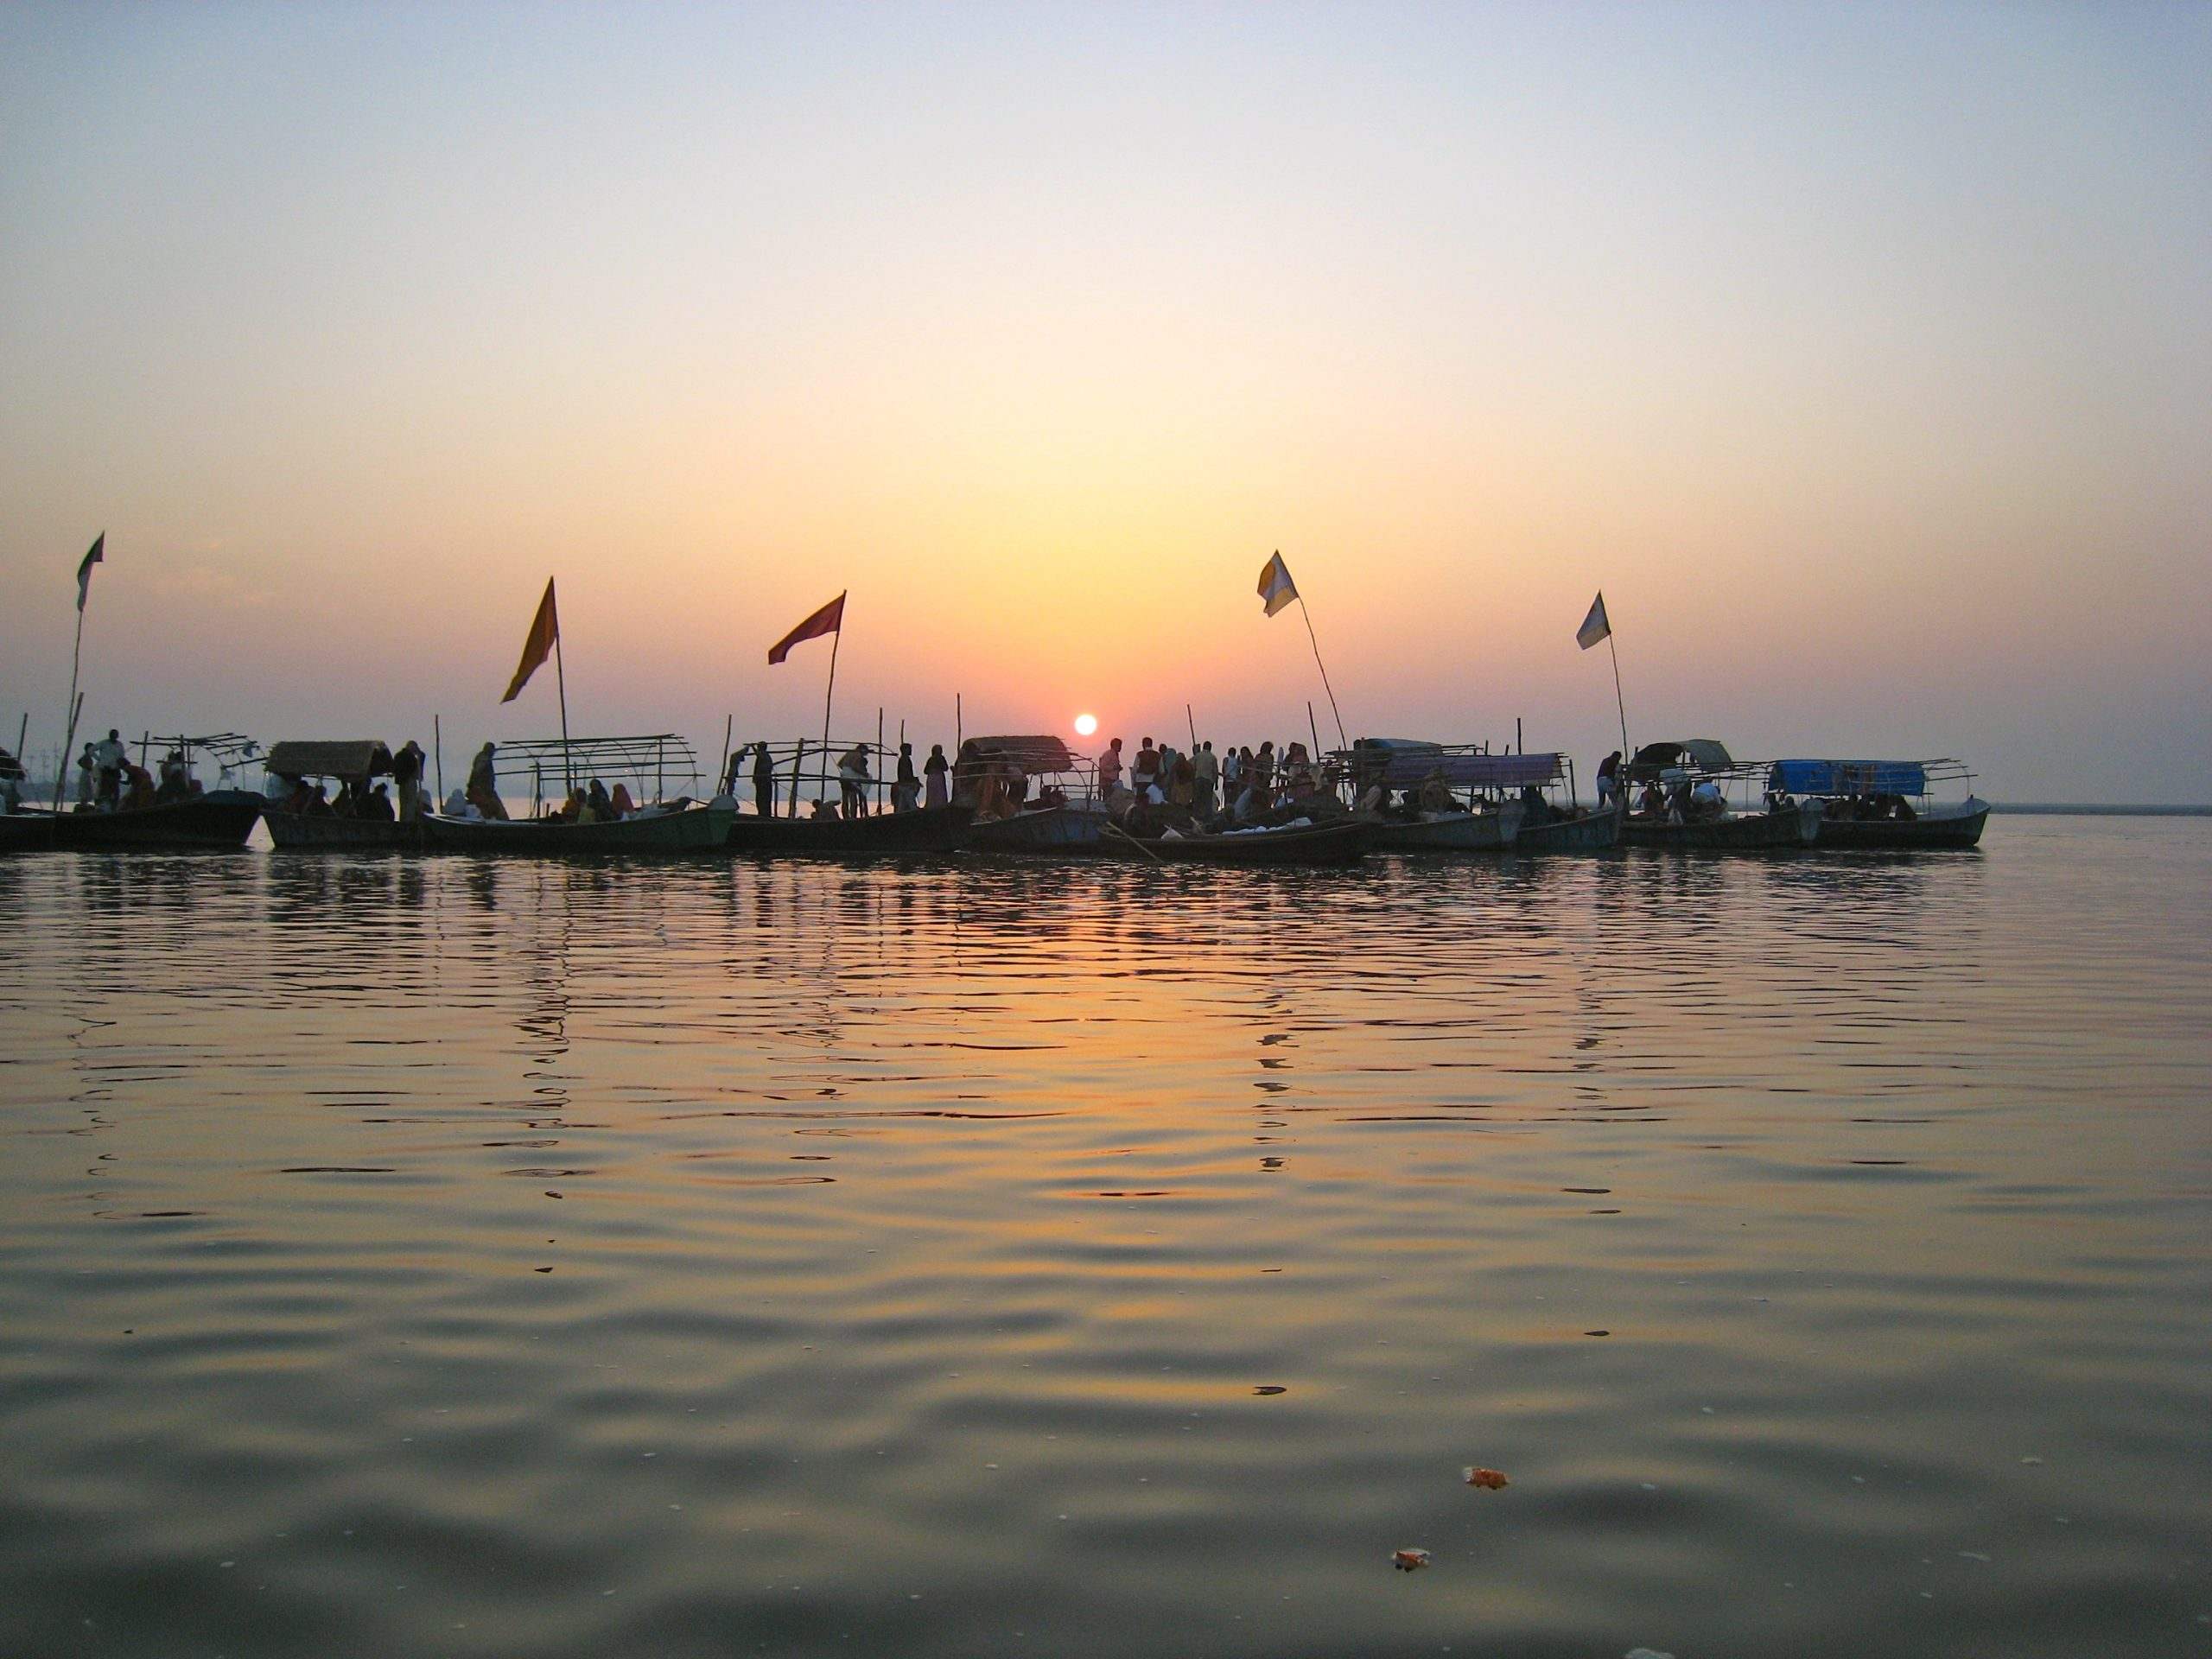 Triveni Sangam - Top Sightseeing Place in Prayagraj